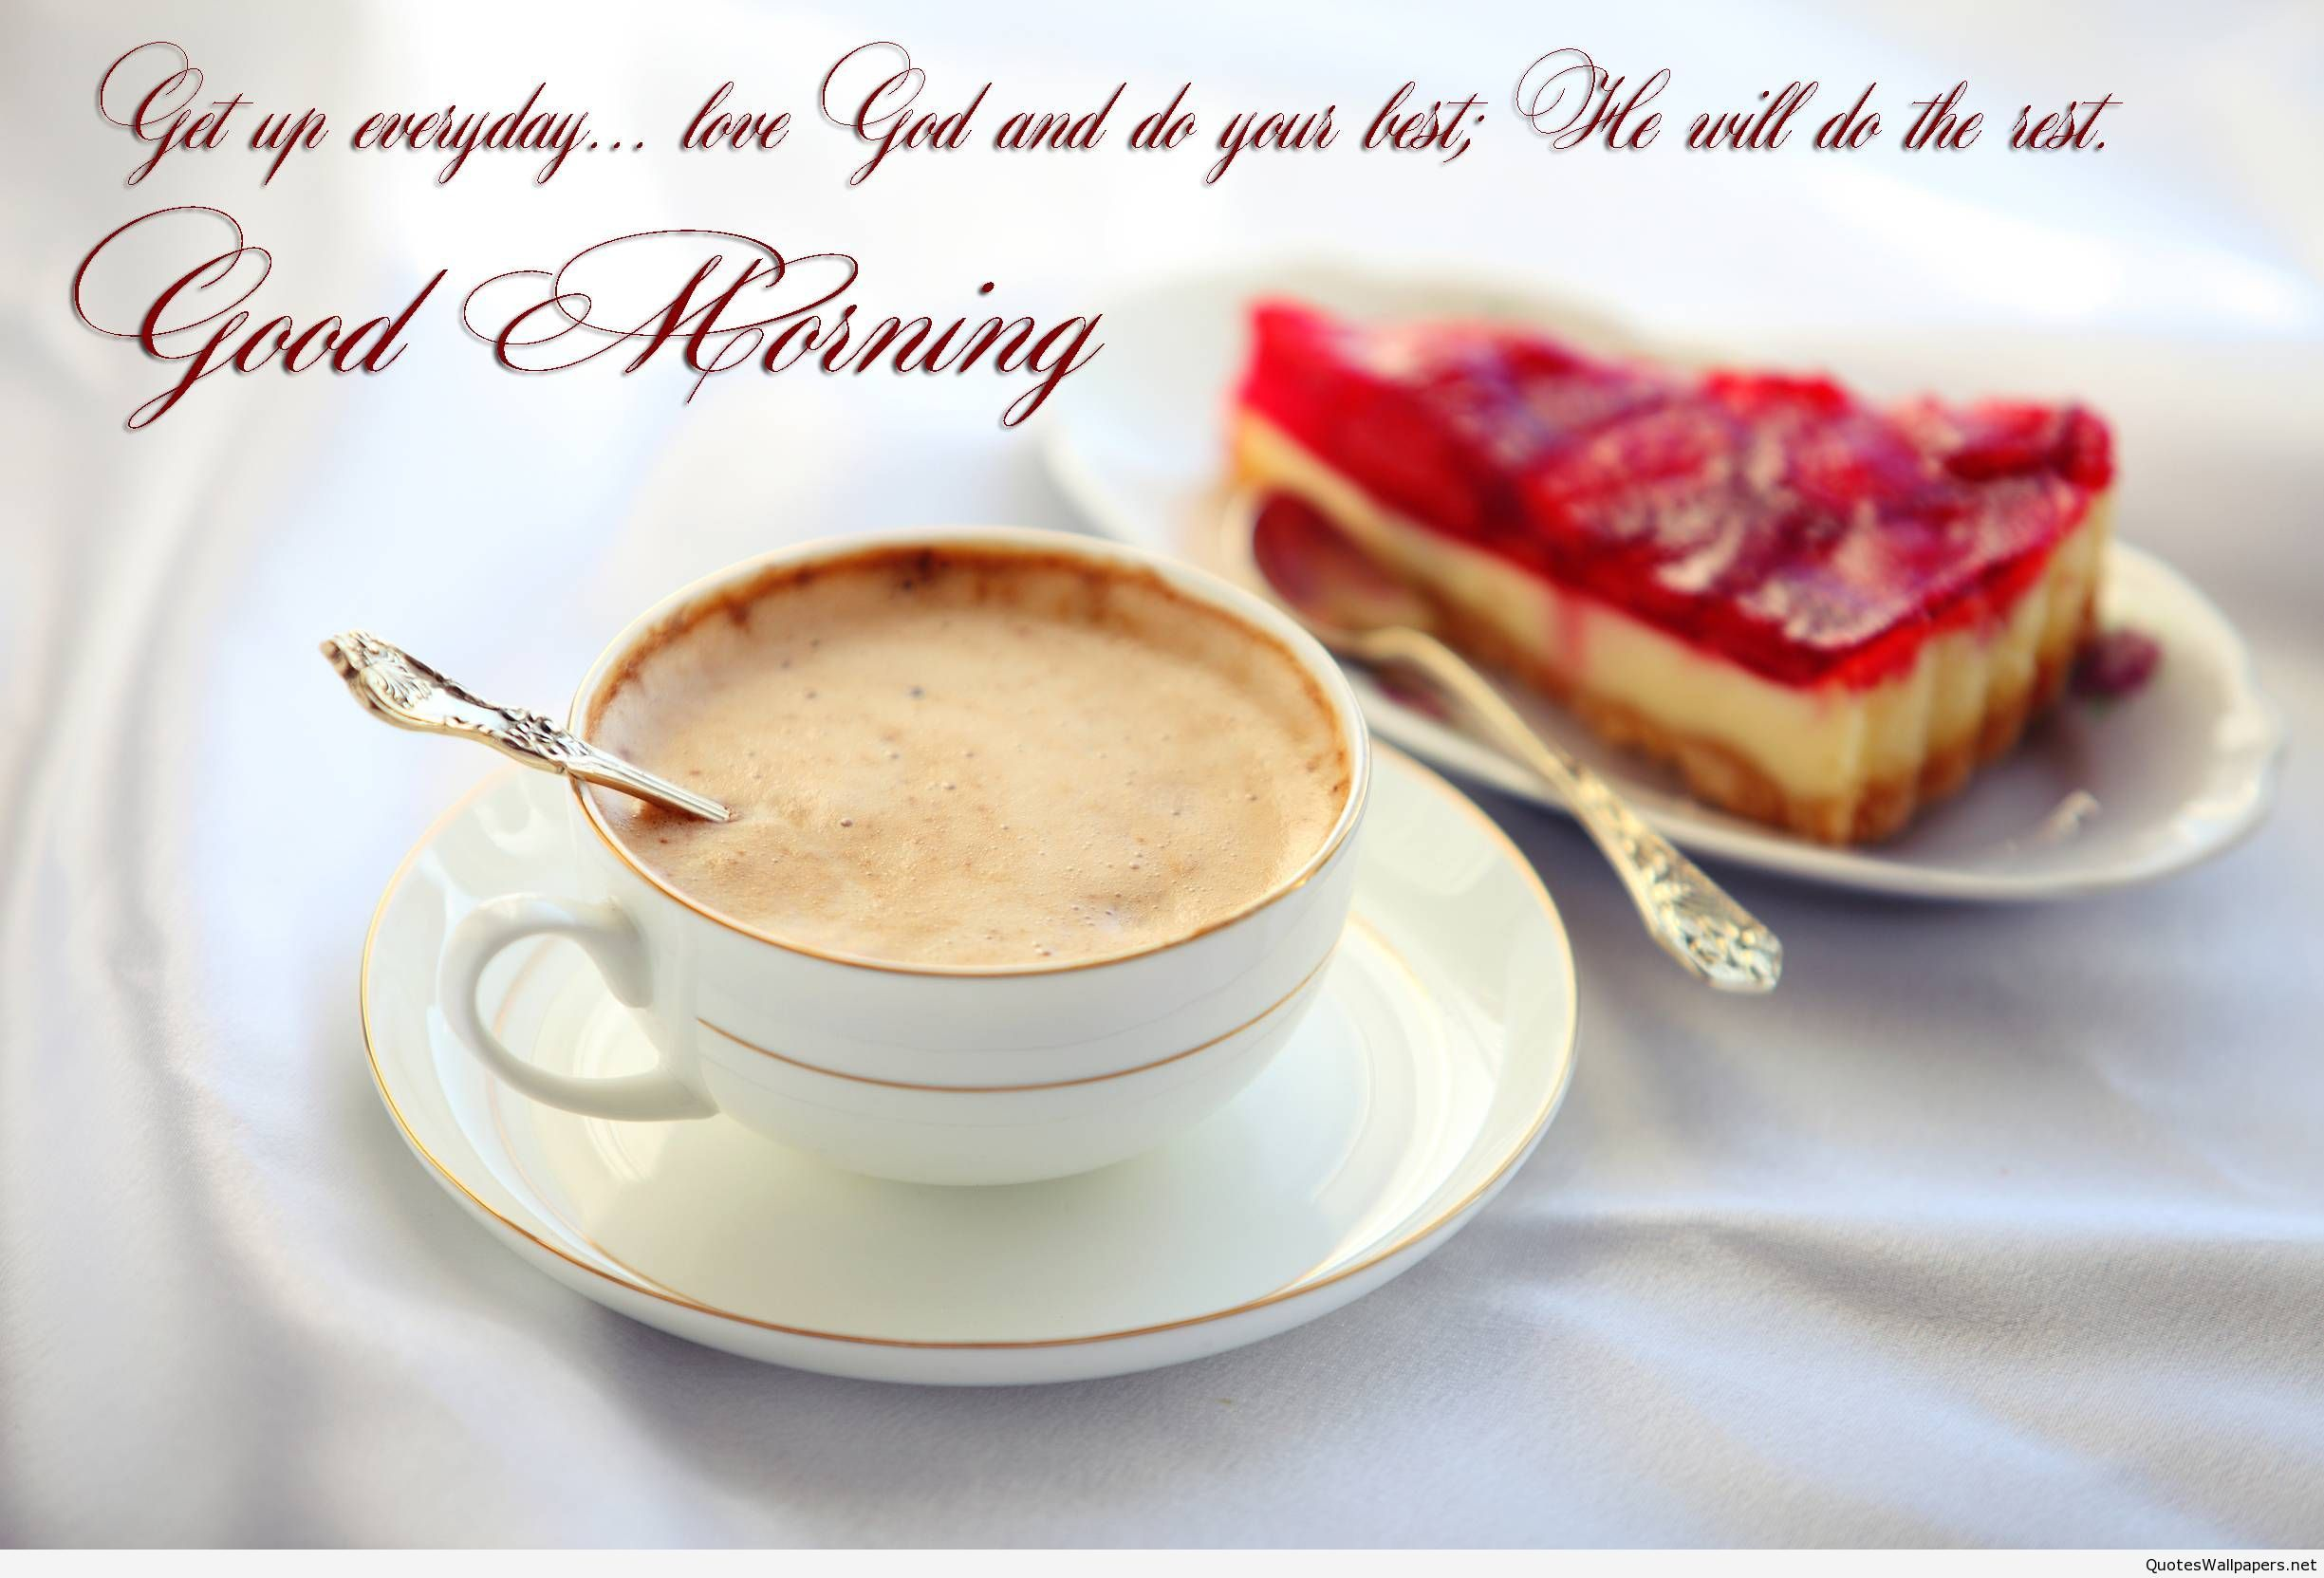 Captivating Good Morning Wishes With Red Rose HD Wallpapers Gifs